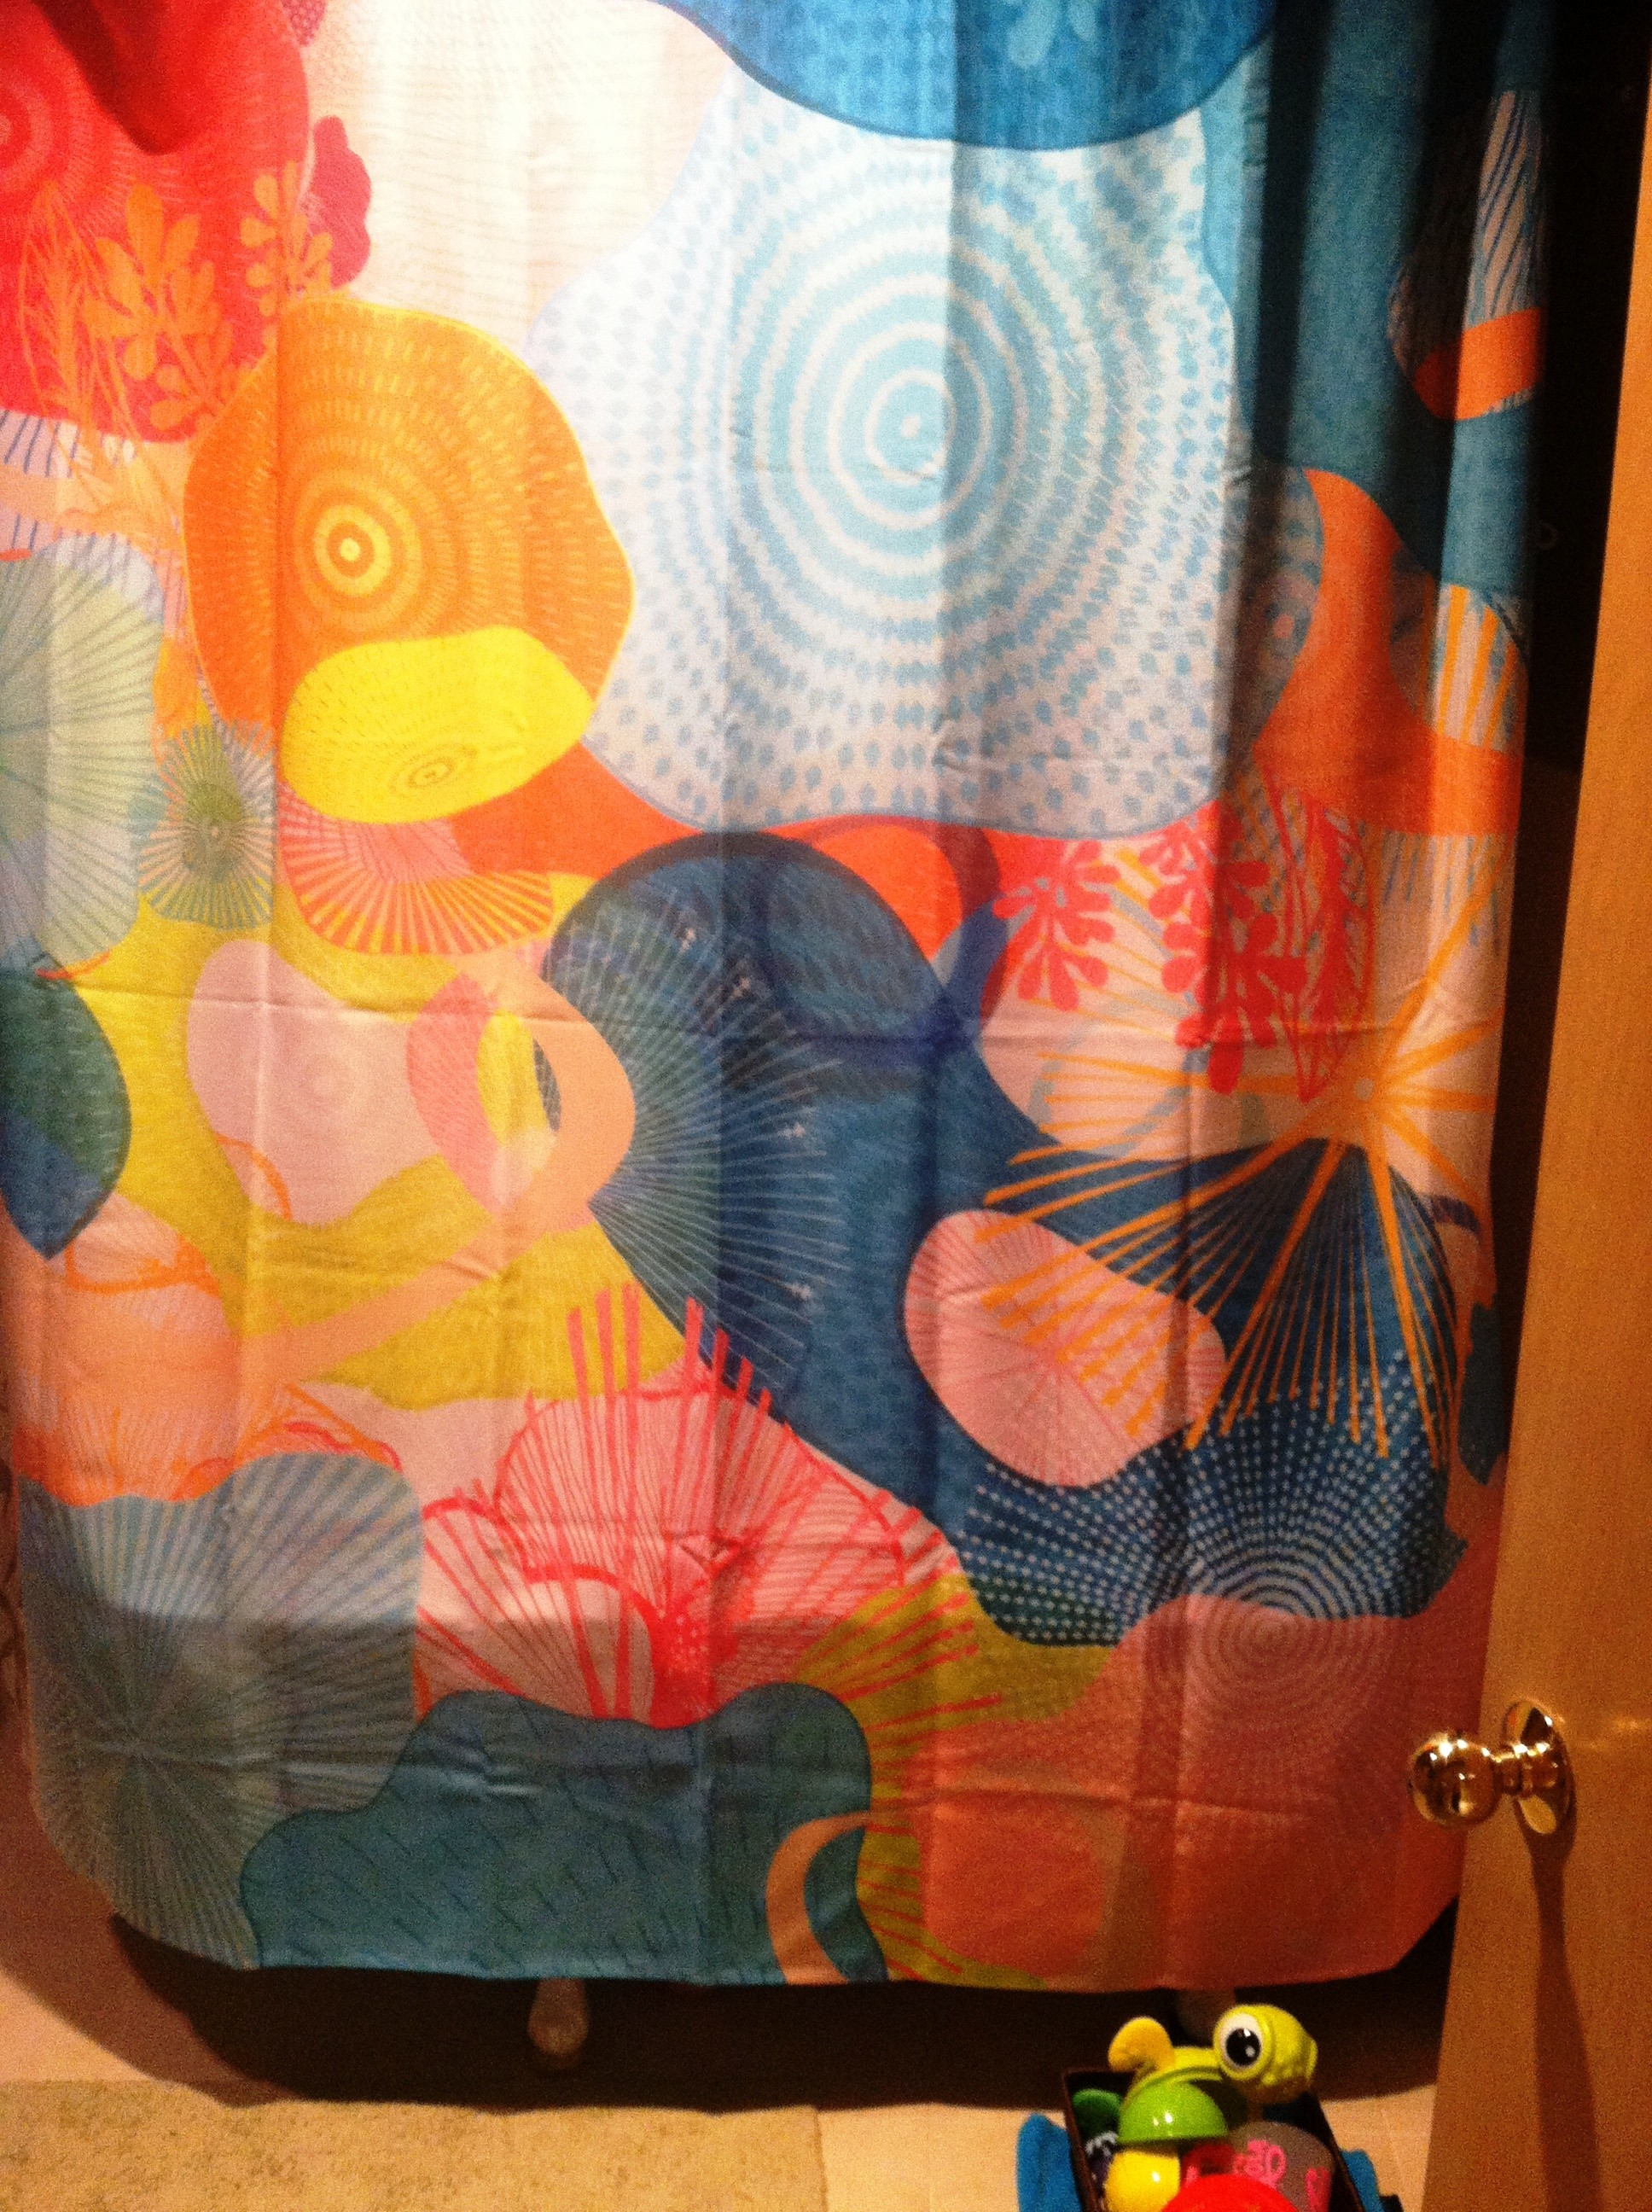 Colorful shower curtains - Amazing Shower Curtains Colorful Shower Curtain I Got This Amazing Colorful Shower Curtain From Mary